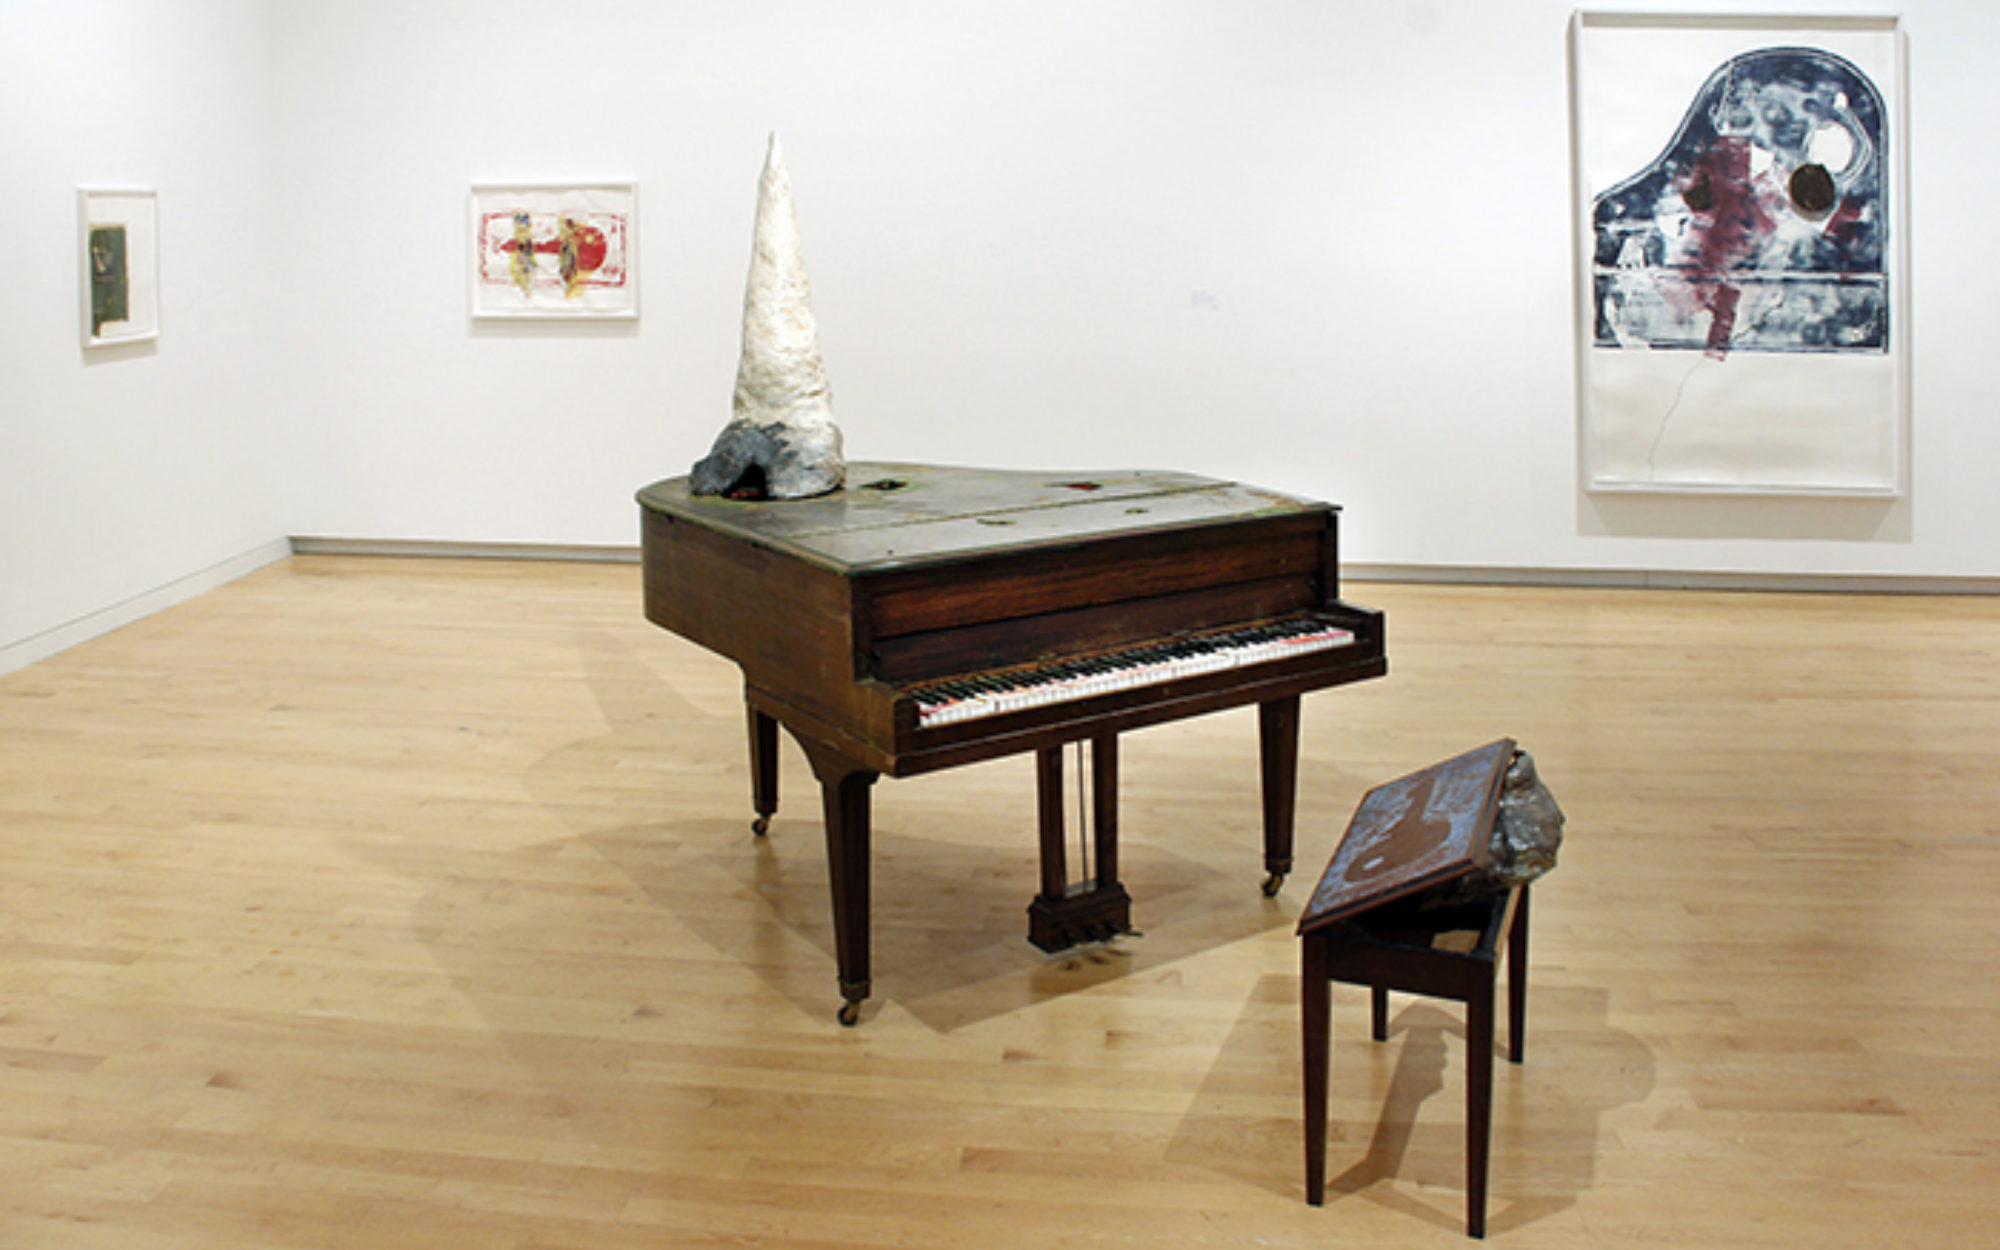 Piano sits in the center of room with a unicorn horn mounted on top